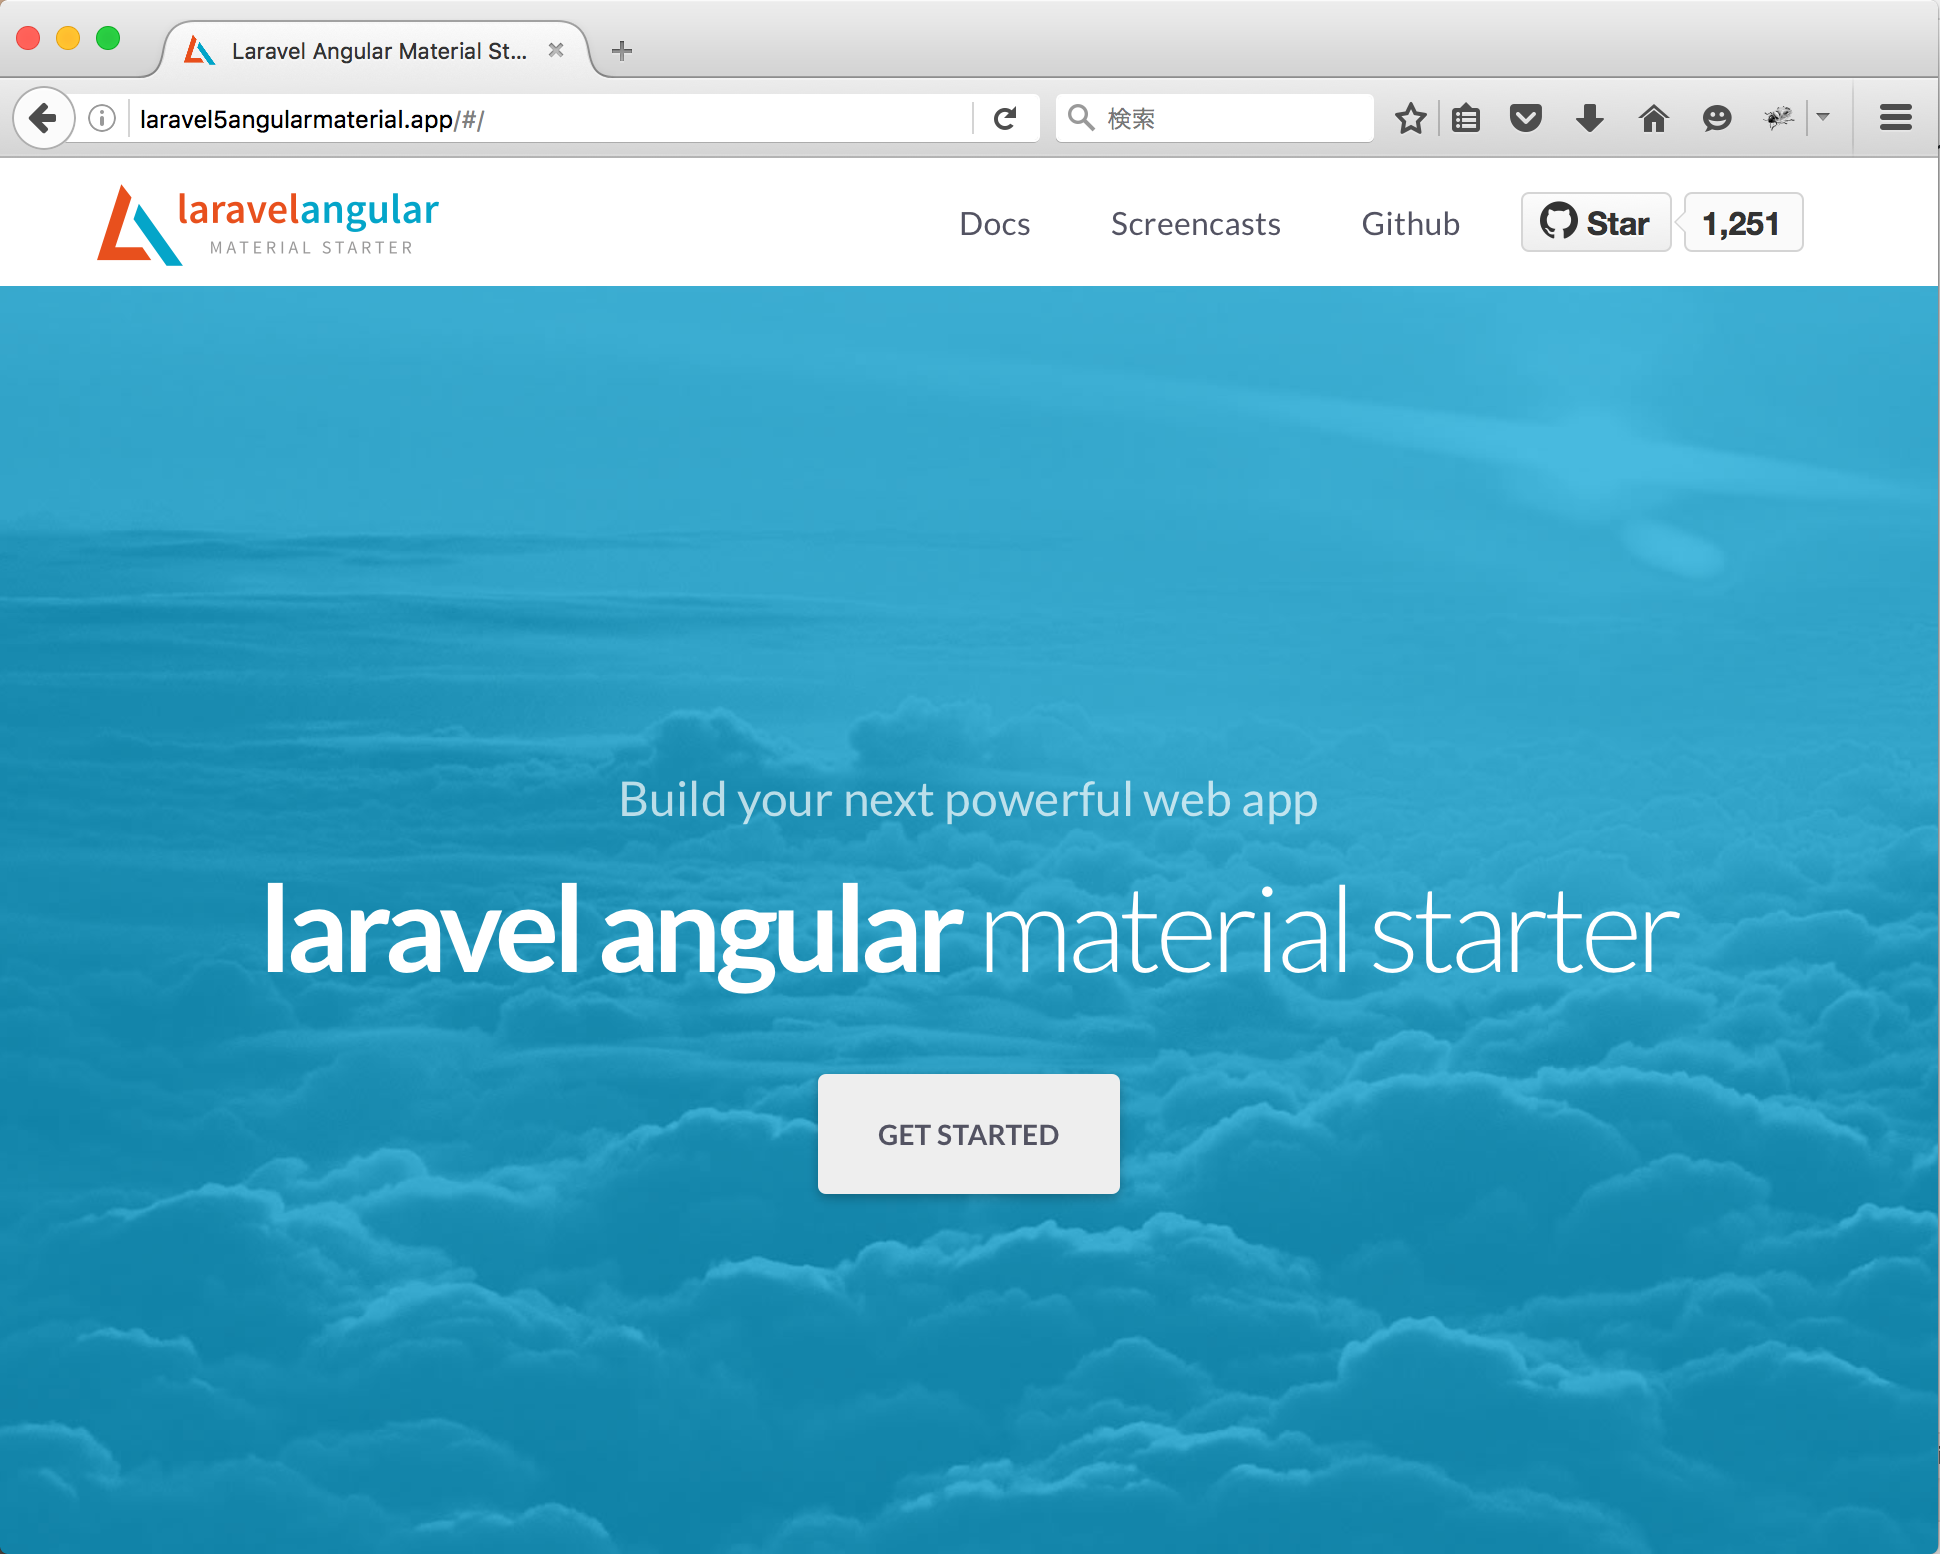 laravel-angular-material-starter-index-page